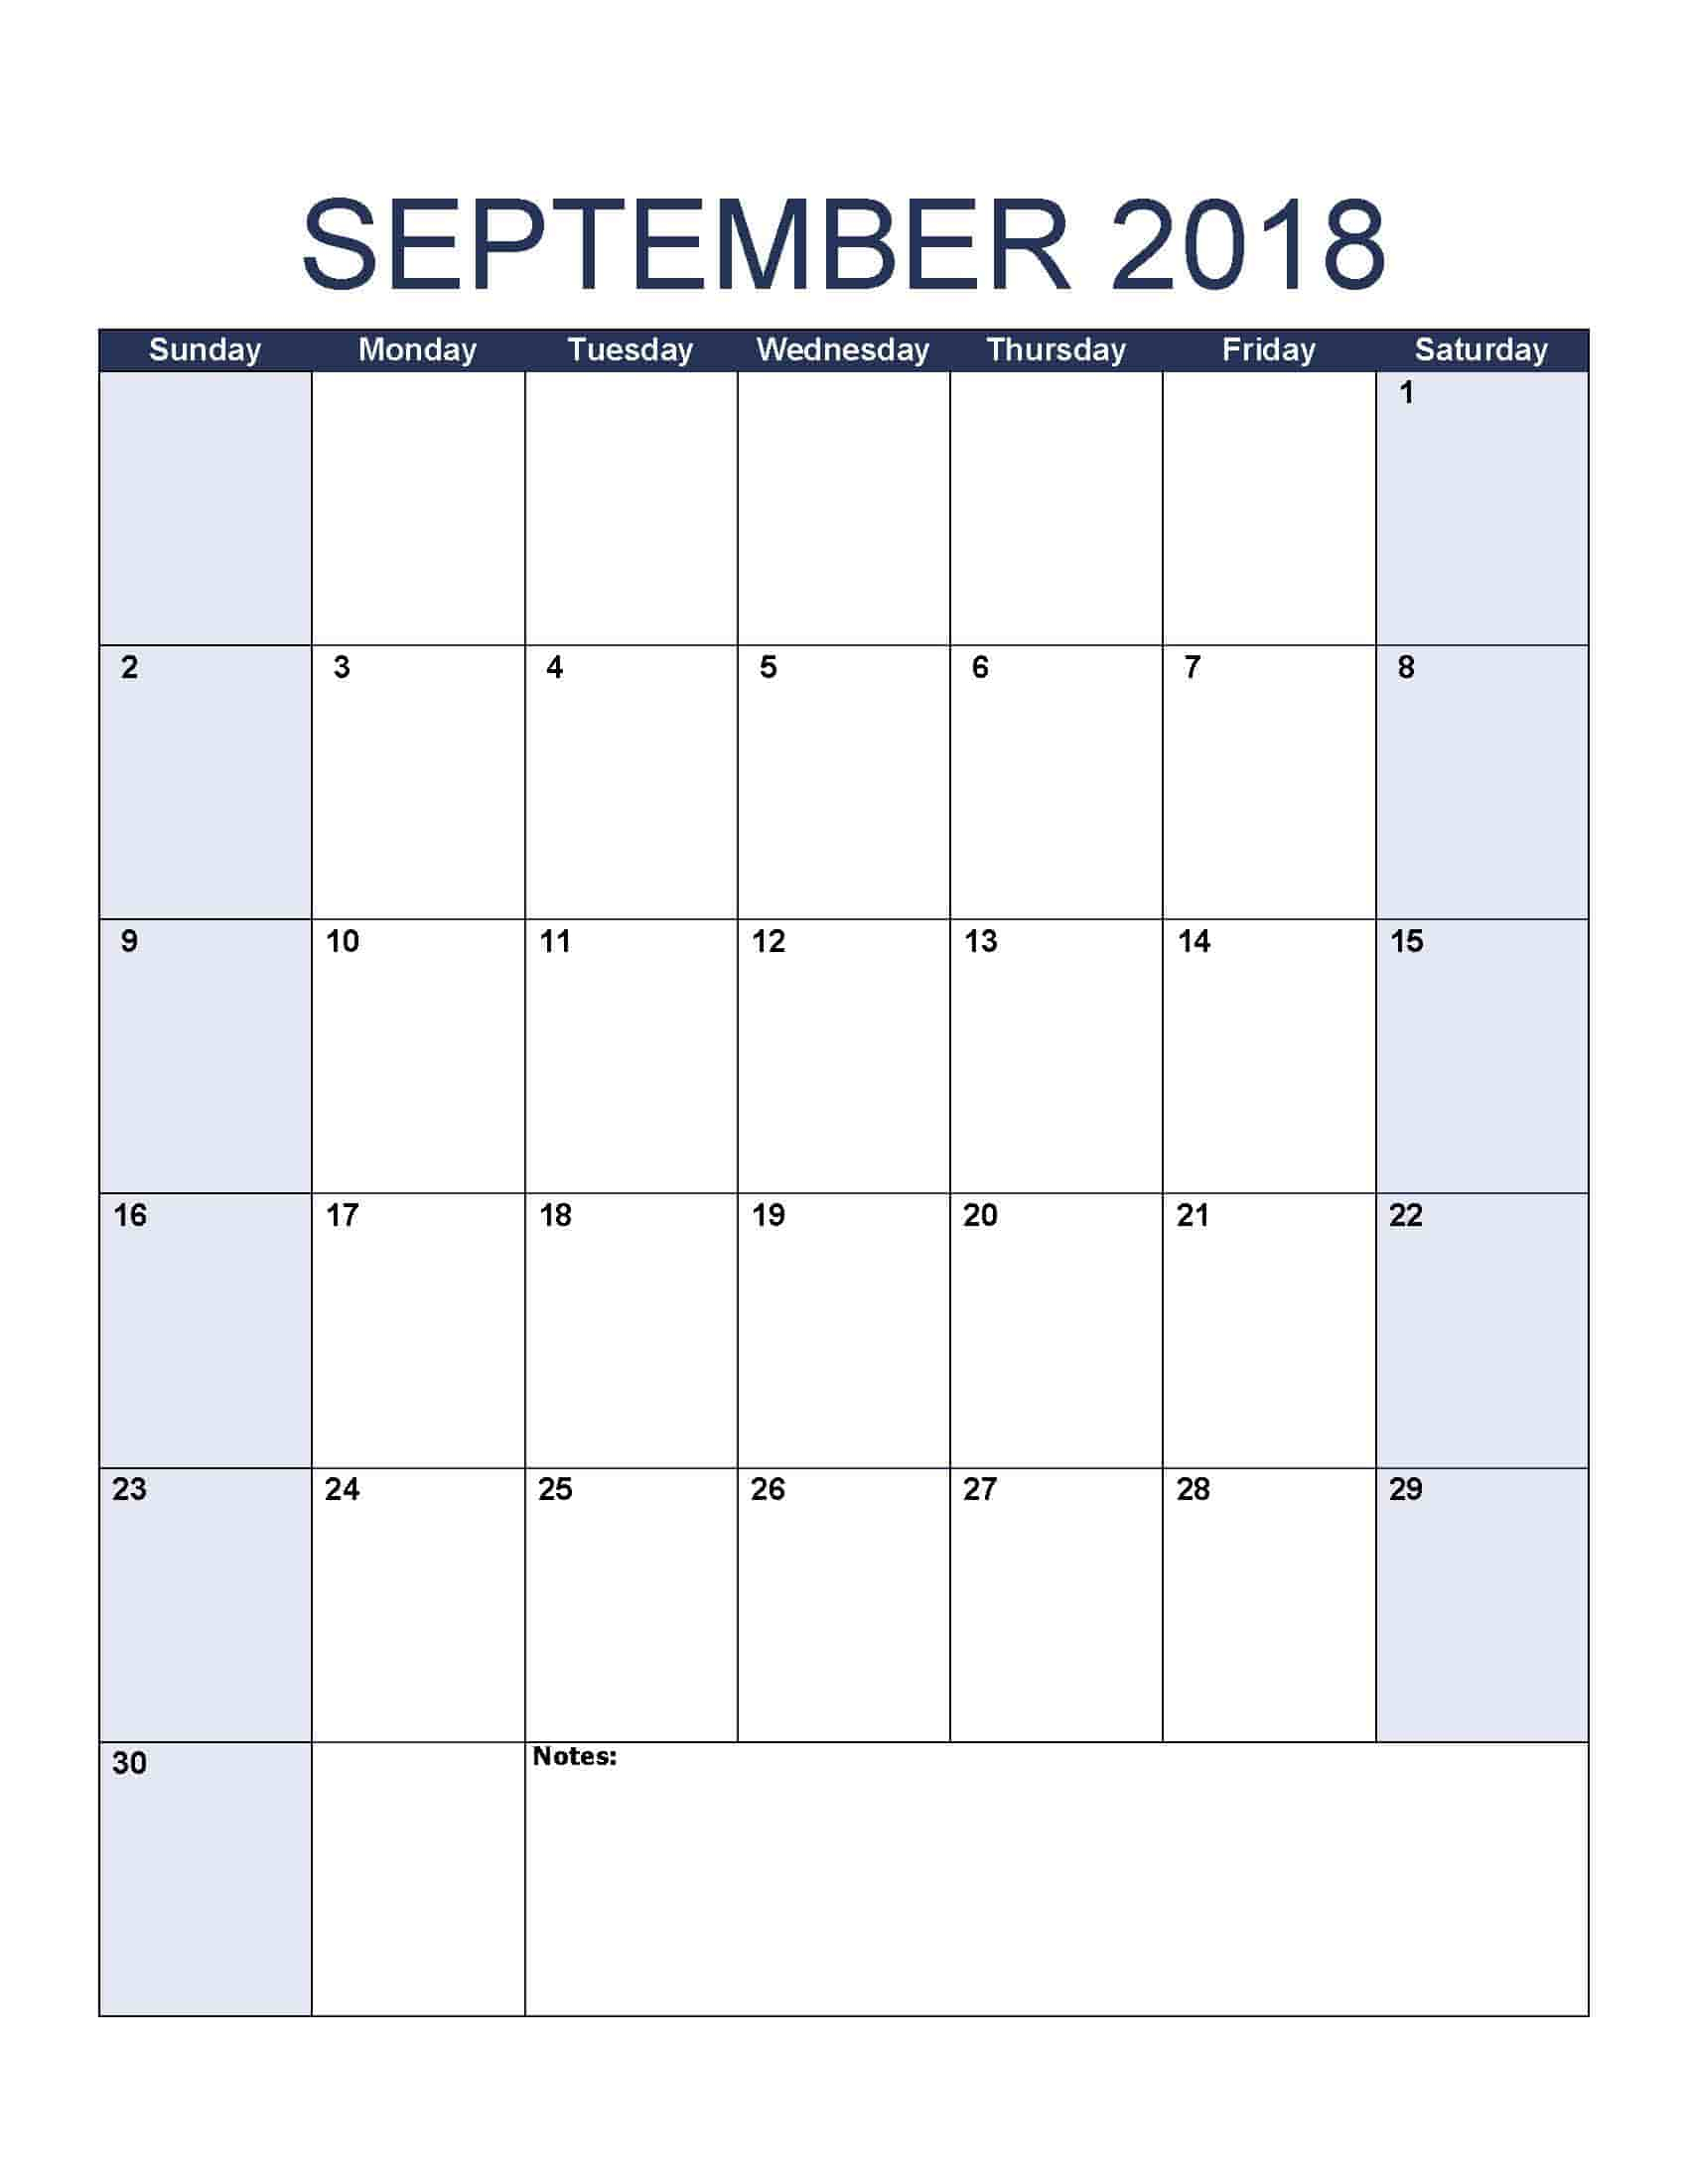 September 2018 Calendar - Free, Printable Calendar Templates